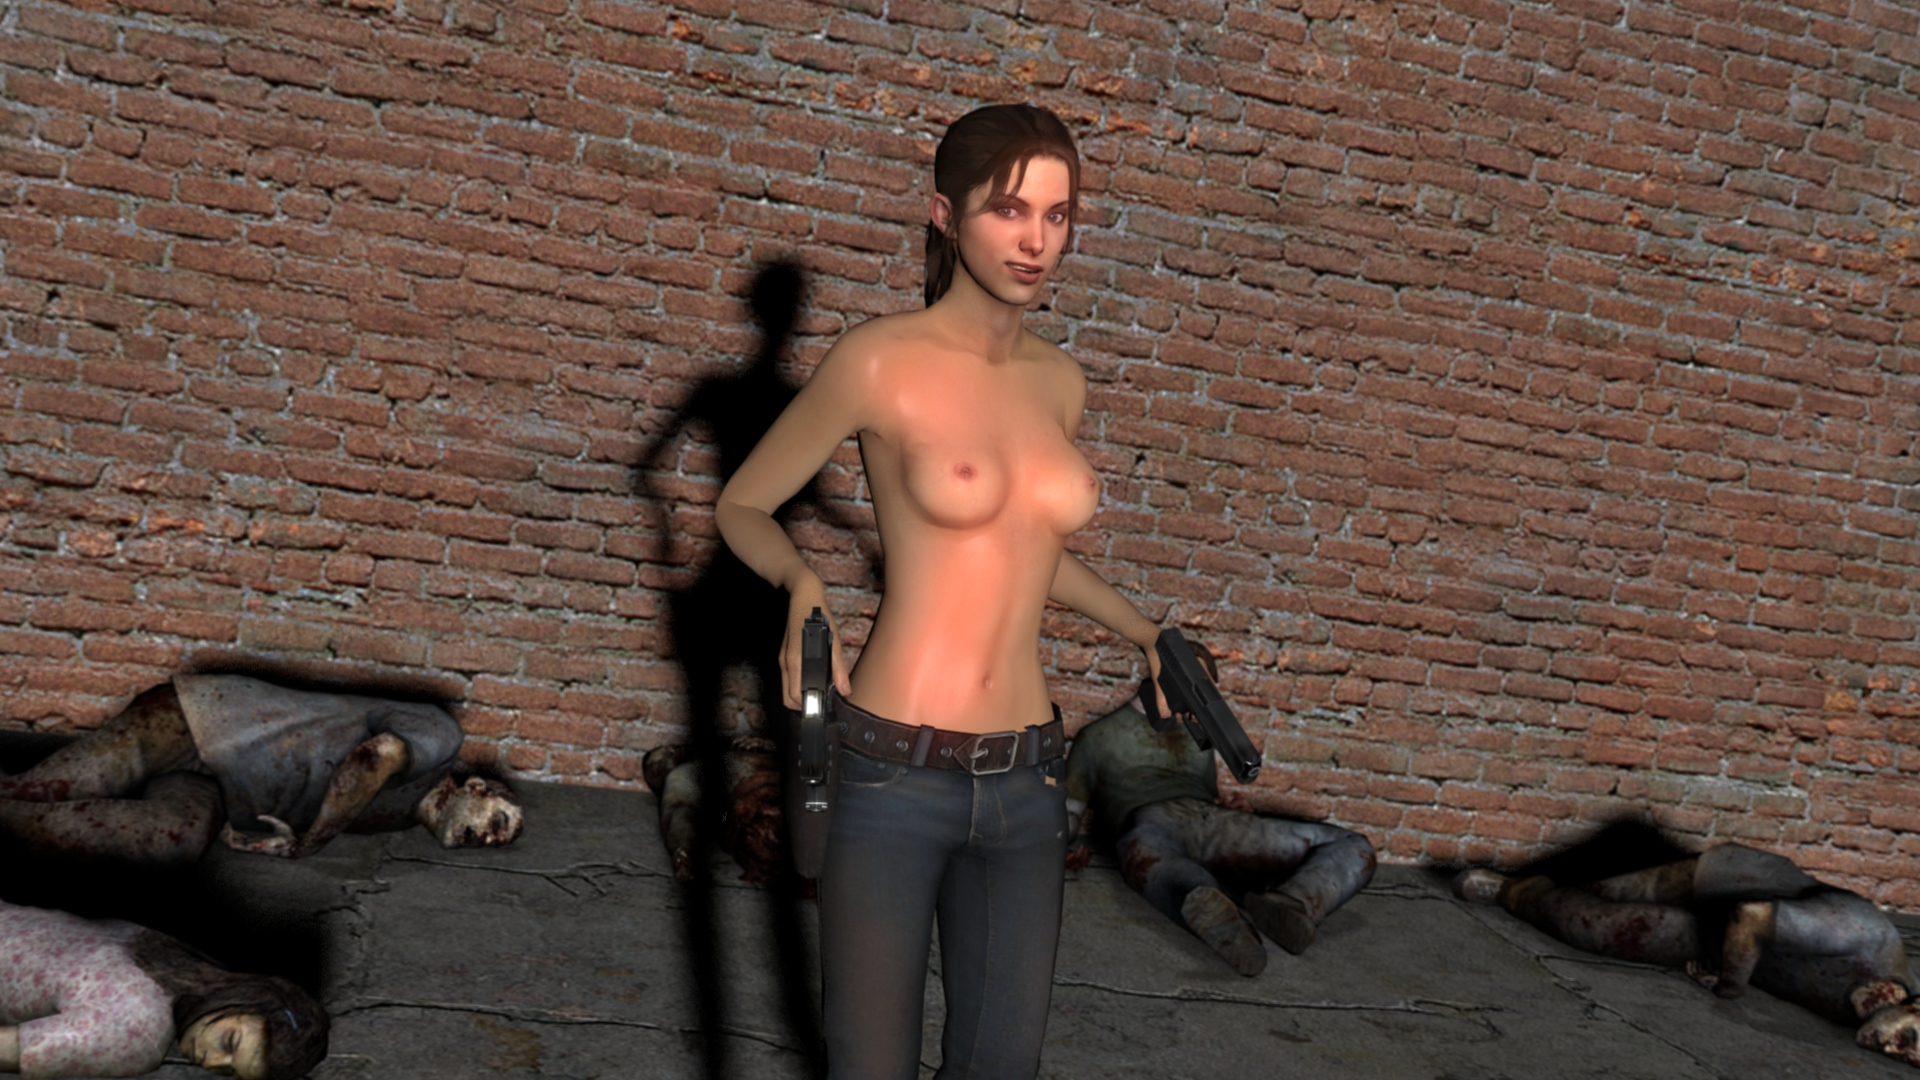 Pics of left for dead 2 naked nackt toons